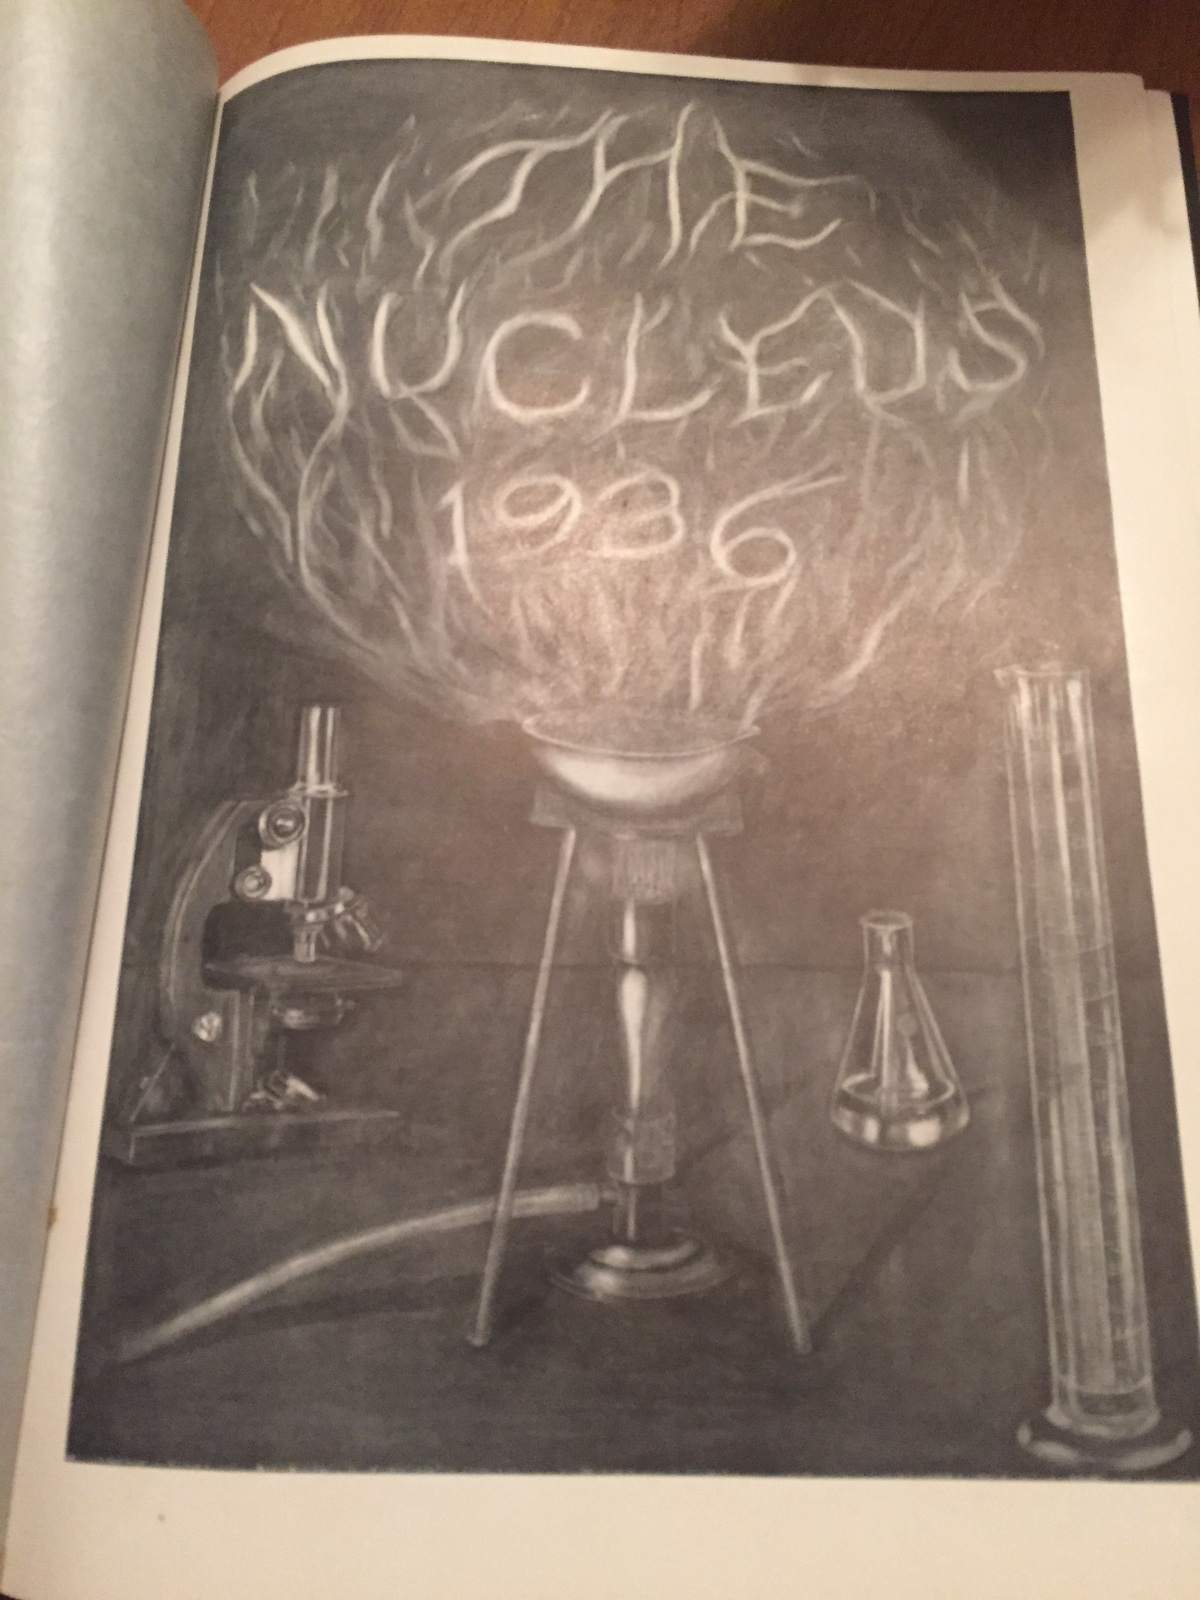 The Nucleus 1936 yearbook drh114